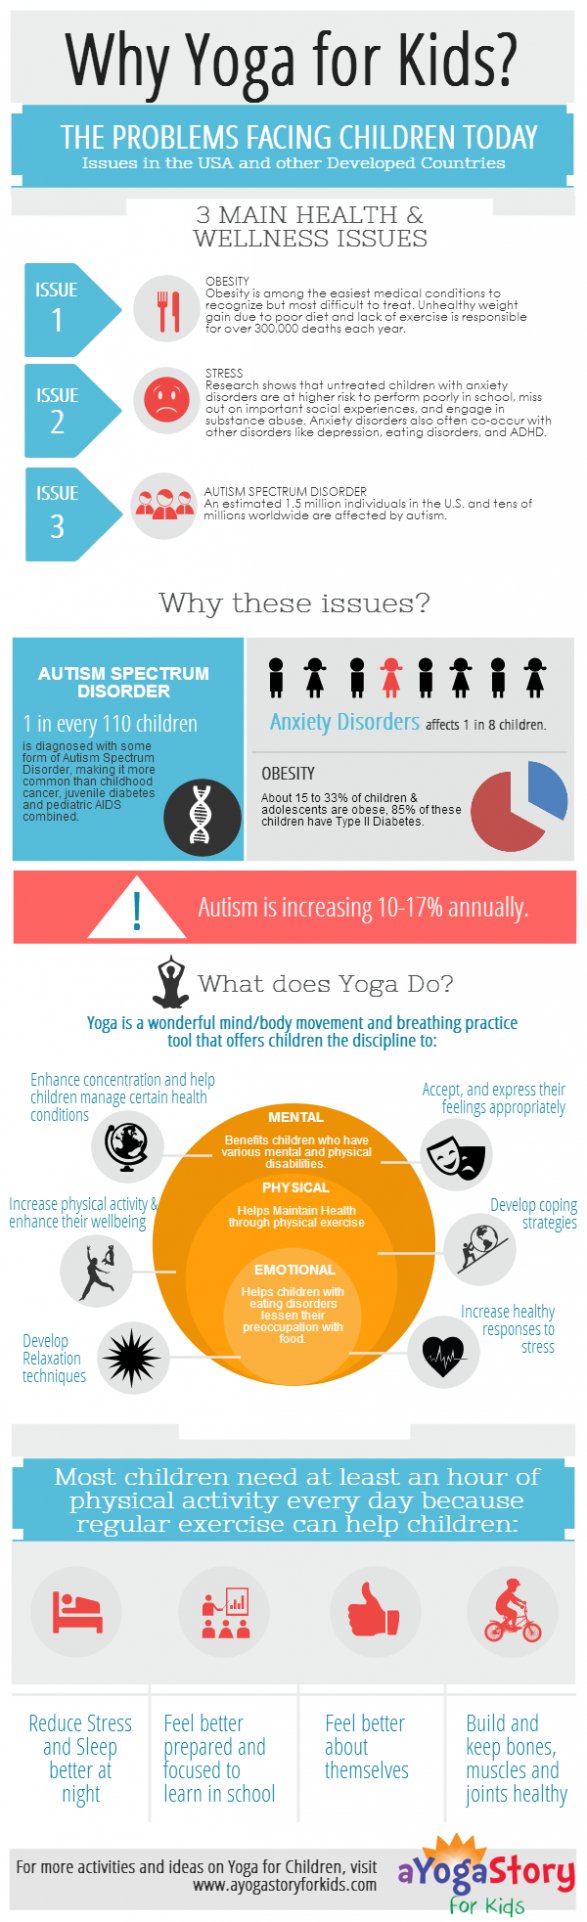 Why Yoga for Kids